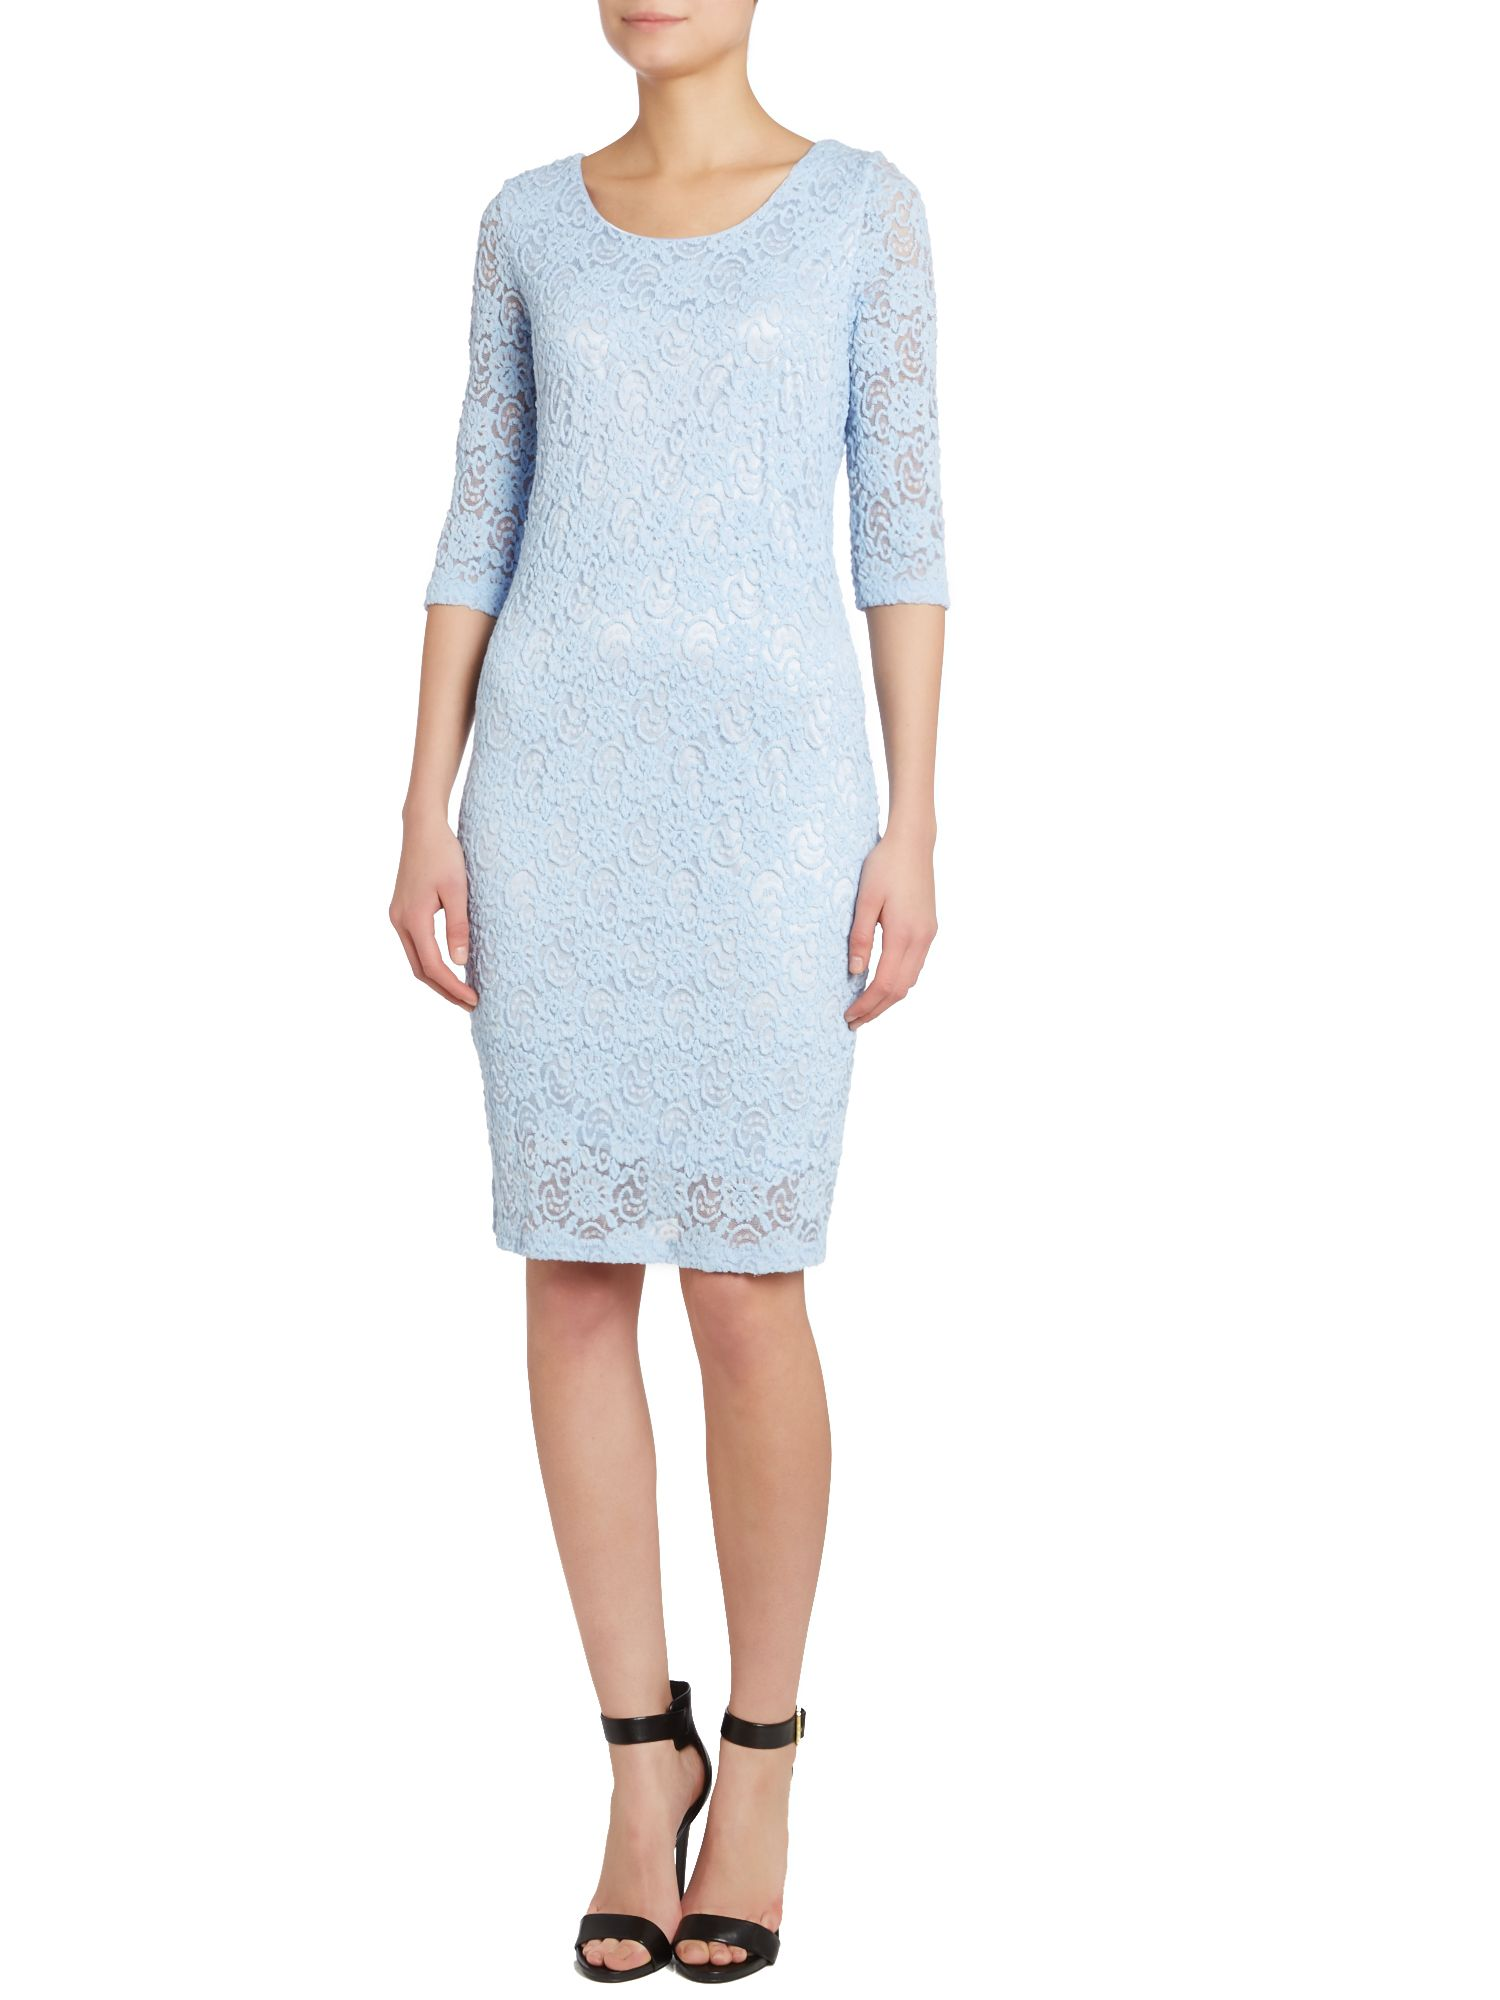 Lace layer midi dress